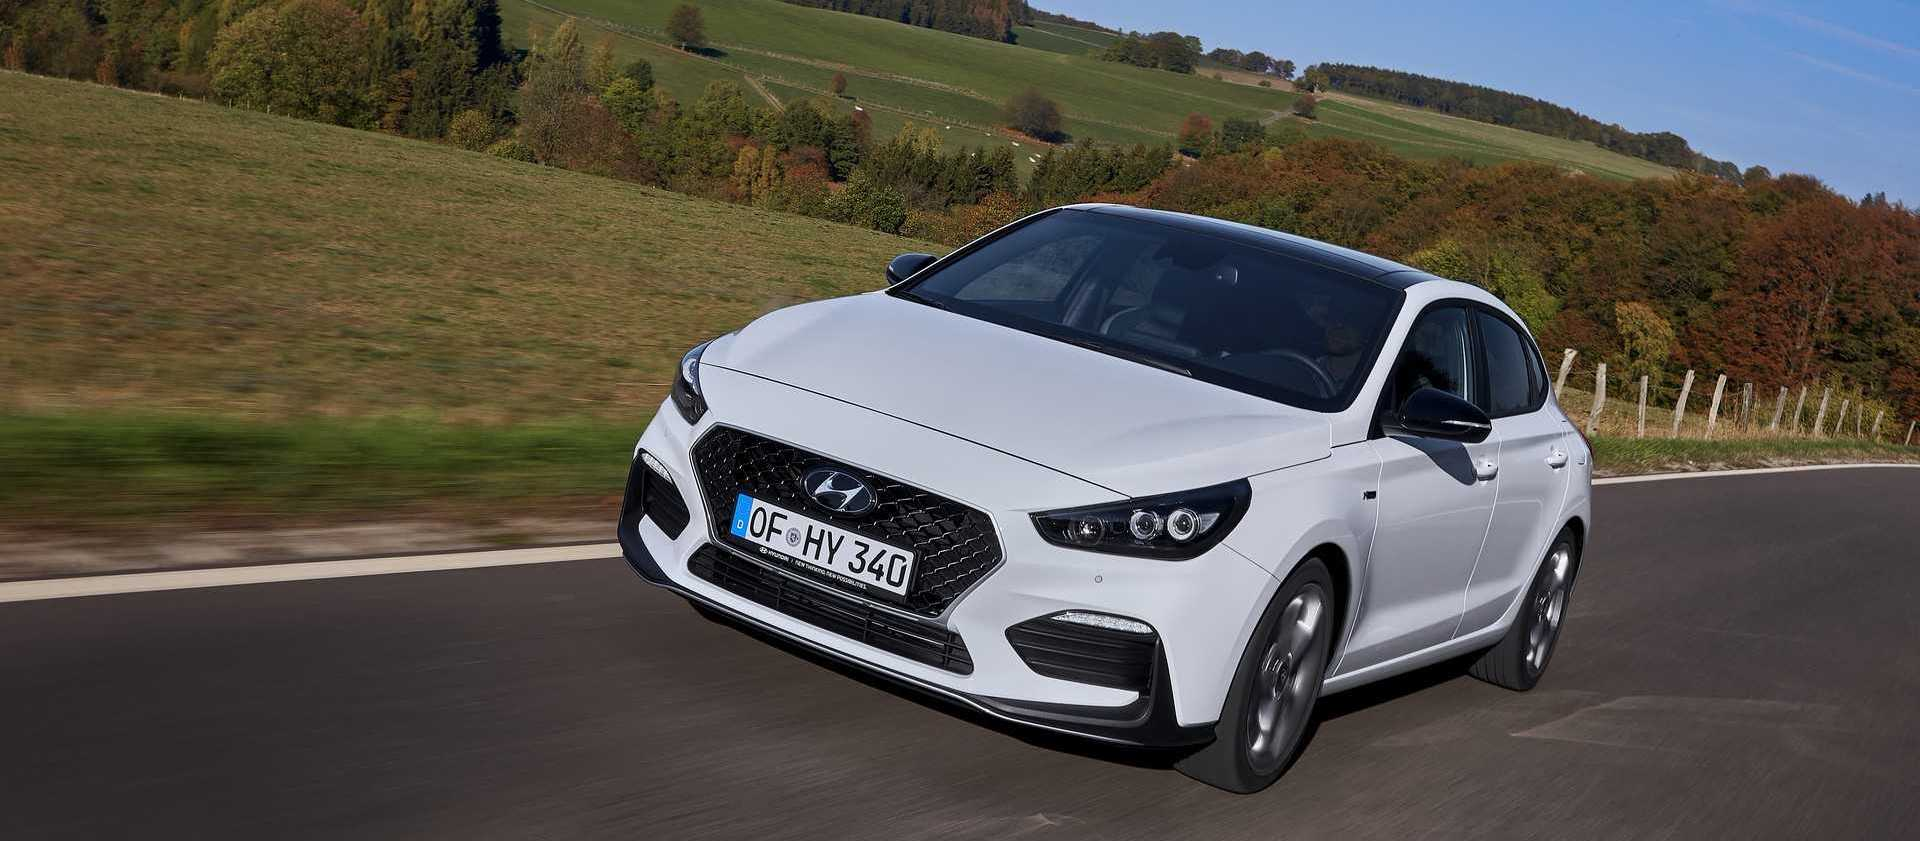 Hyundai i30 Fastback N Line Revealed With Sporty Looks